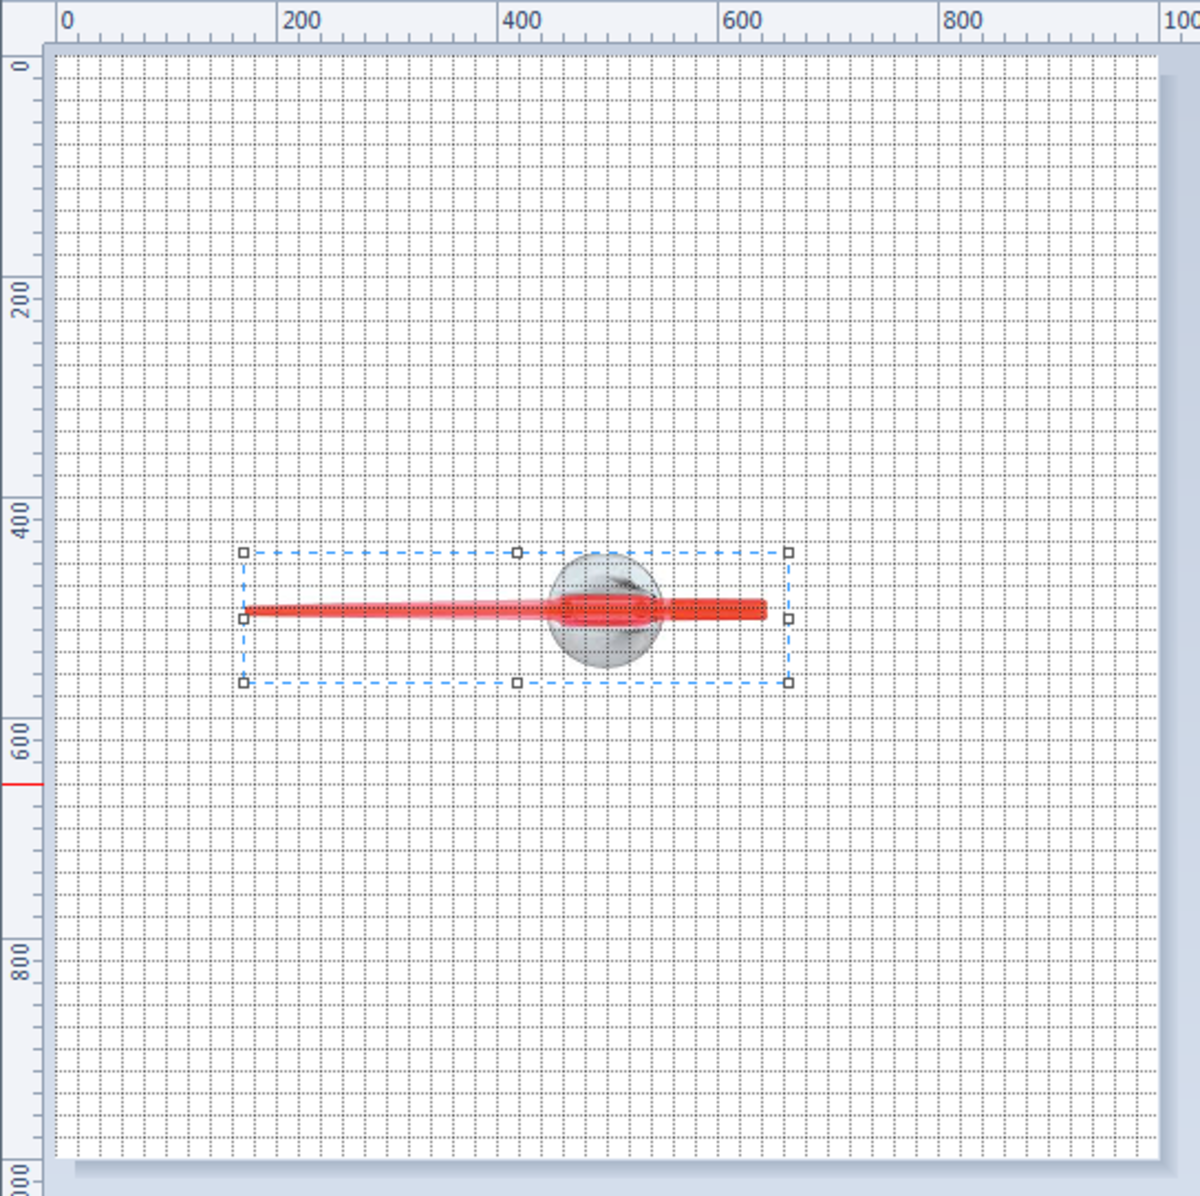 Move the fulcrum of the needle to the centre of the picture created using MS Paint, utilising the ruler and grid lines as a guide.